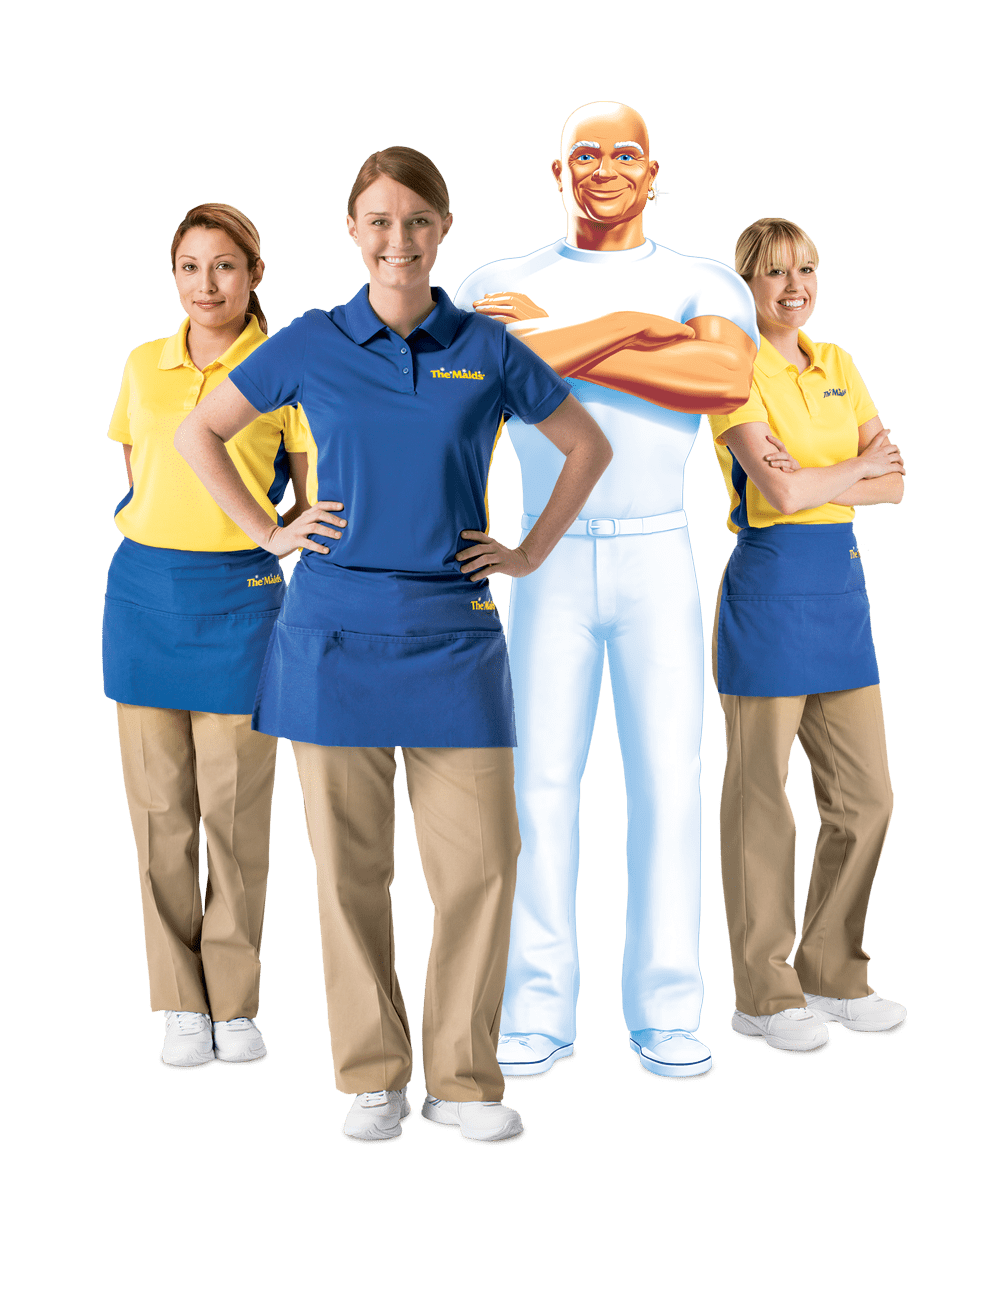 The Maids House Cleaning - The Maids in San Jose & Milpitas Home Cleaning